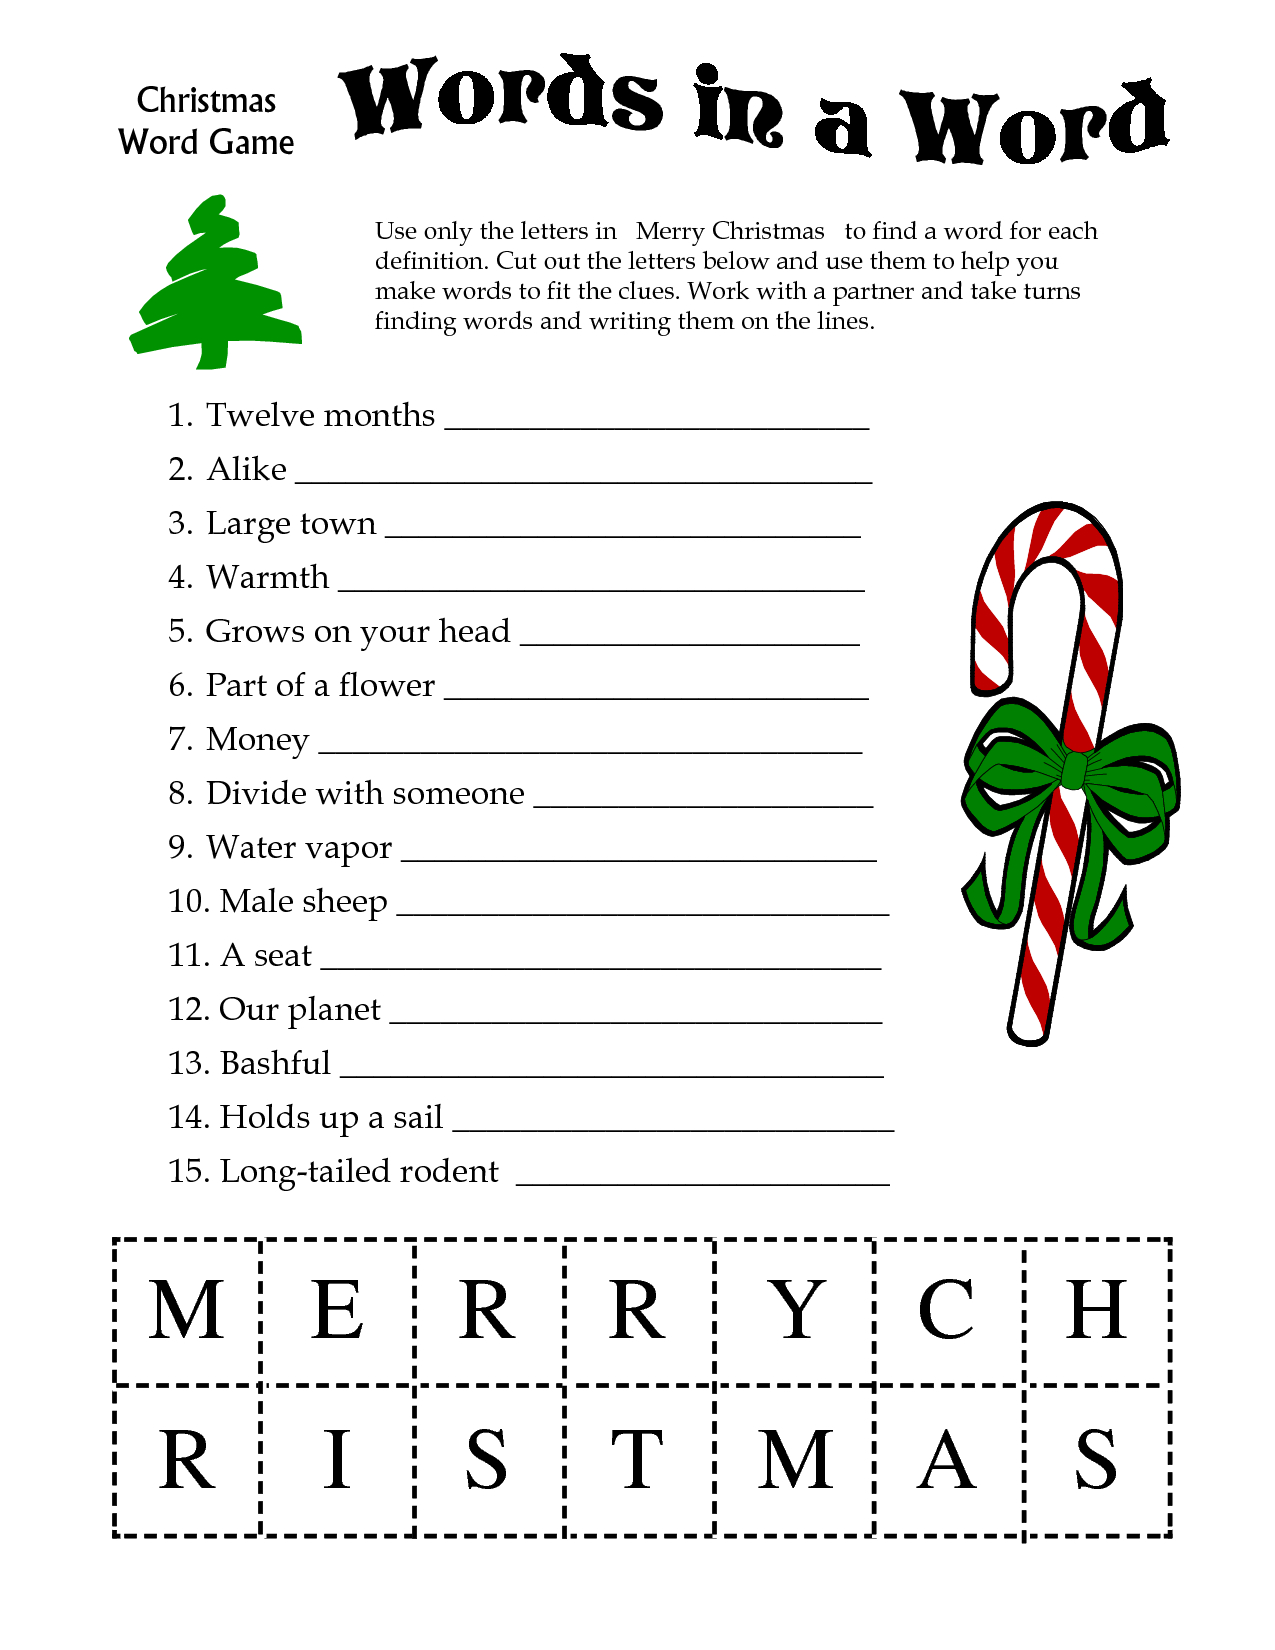 5 Images Of Free Printable Christmas Word Games | Printablee - Free Printable Christmas Word Games